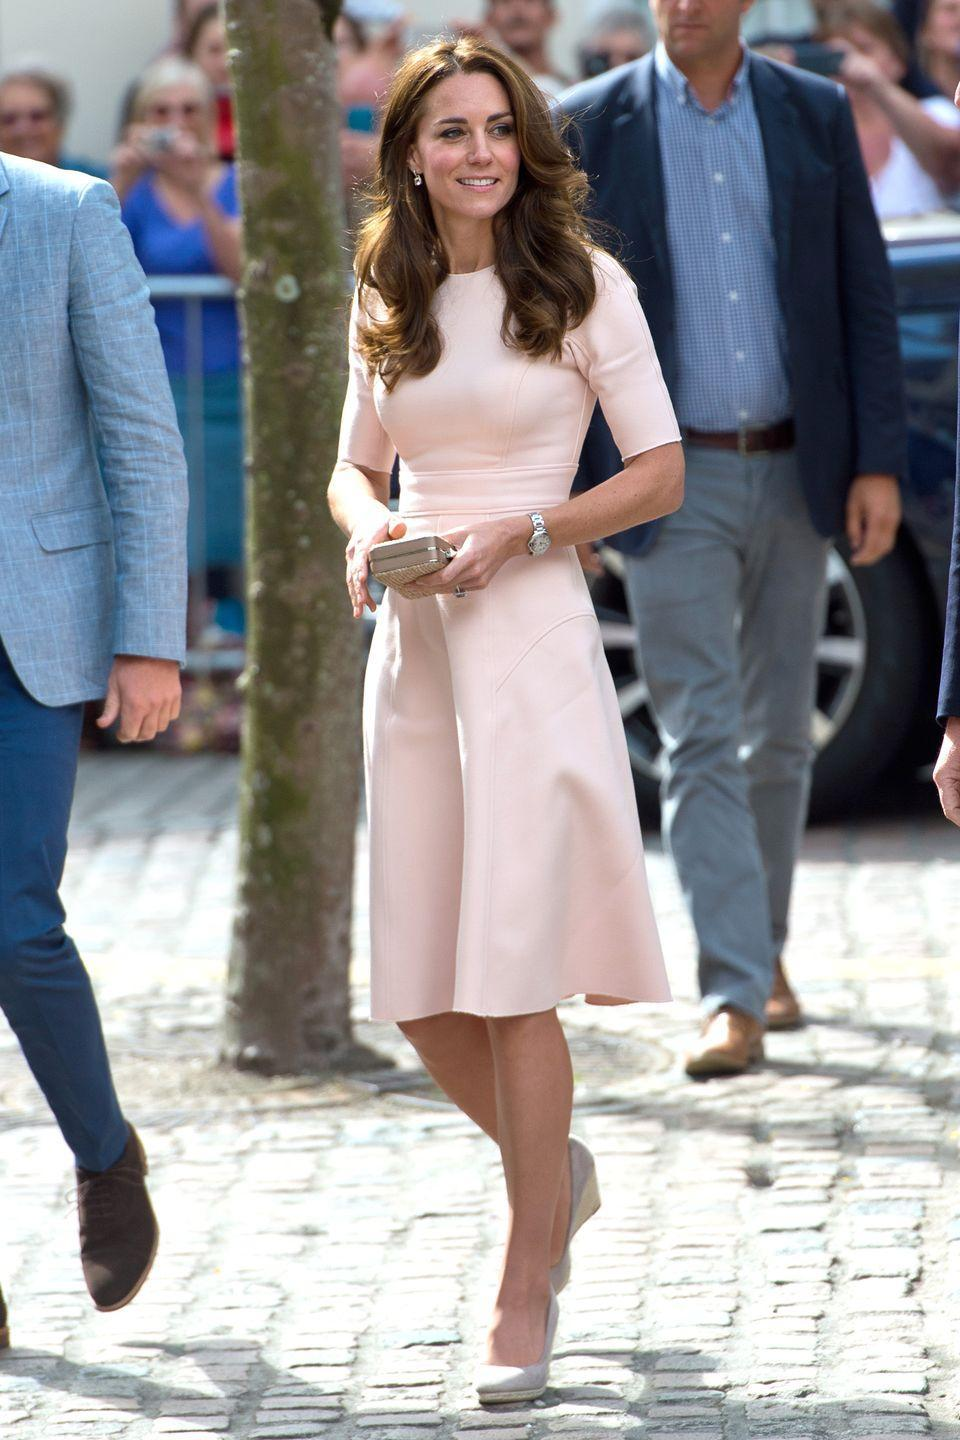 <p>The Duchess wears a light pink knee-length dress by Lela Rose with a box clutch and beige espadrille wedges while visiting Cornwall this morning.</p>